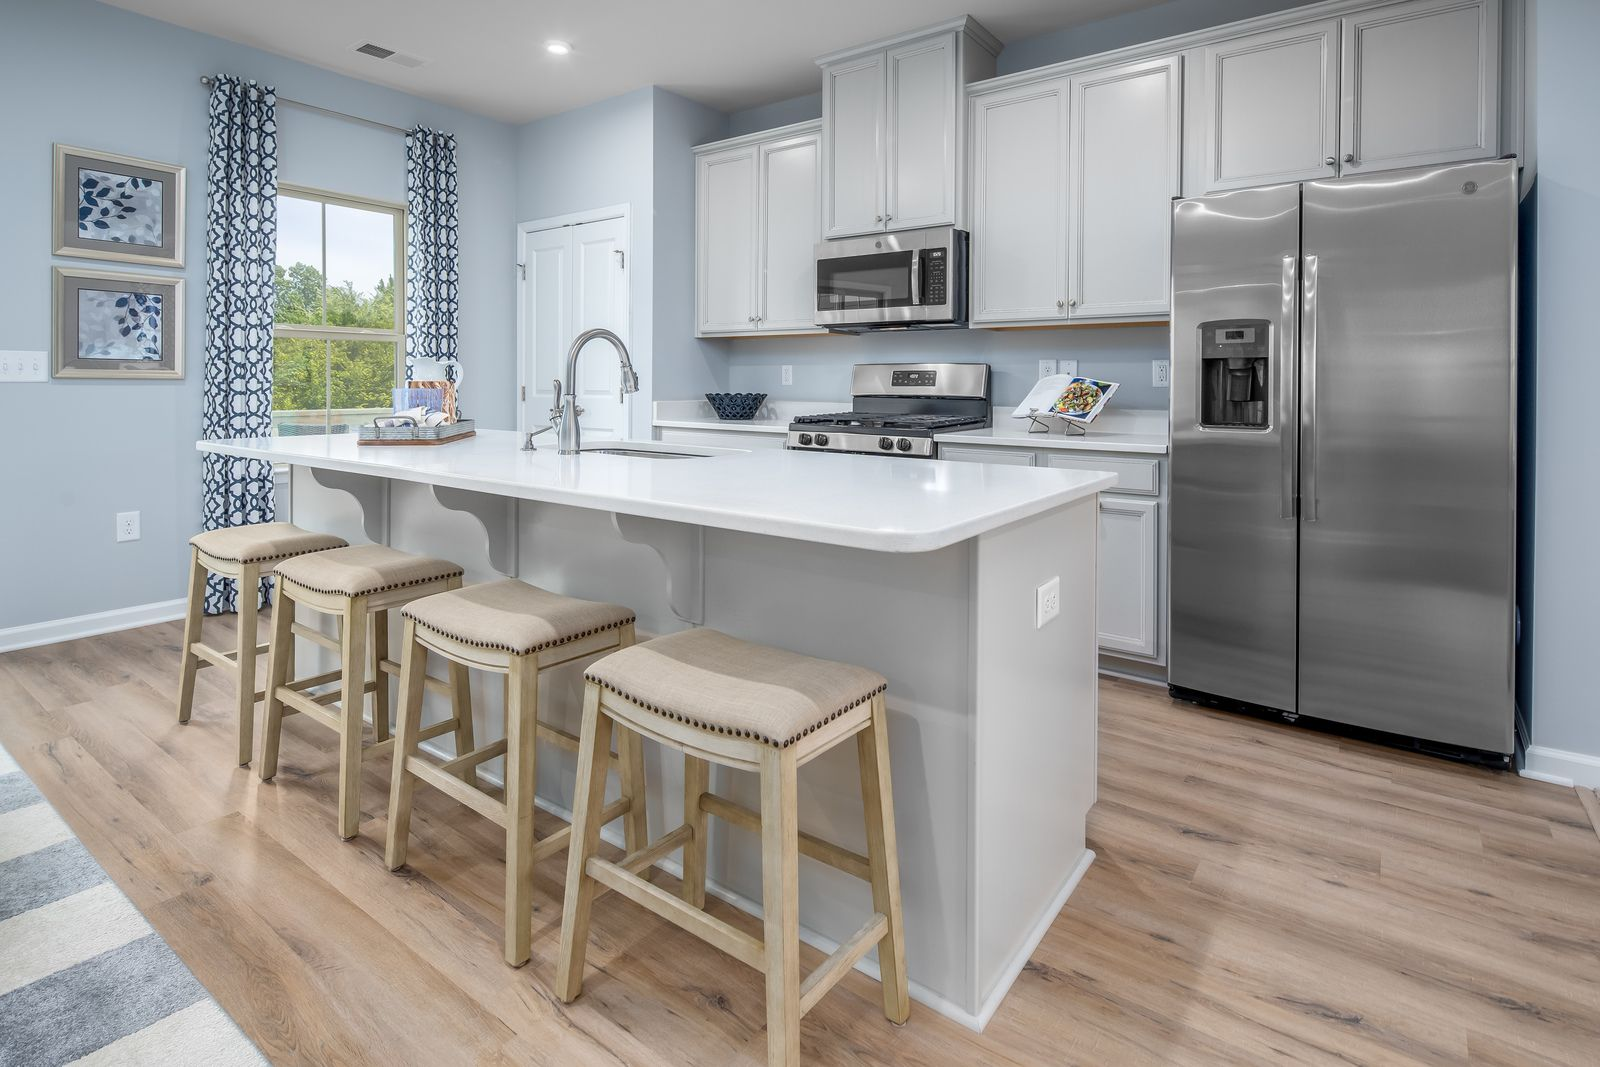 Kitchen featured in the Mozart 2-Car Garage By Ryan Homes in Baltimore, MD